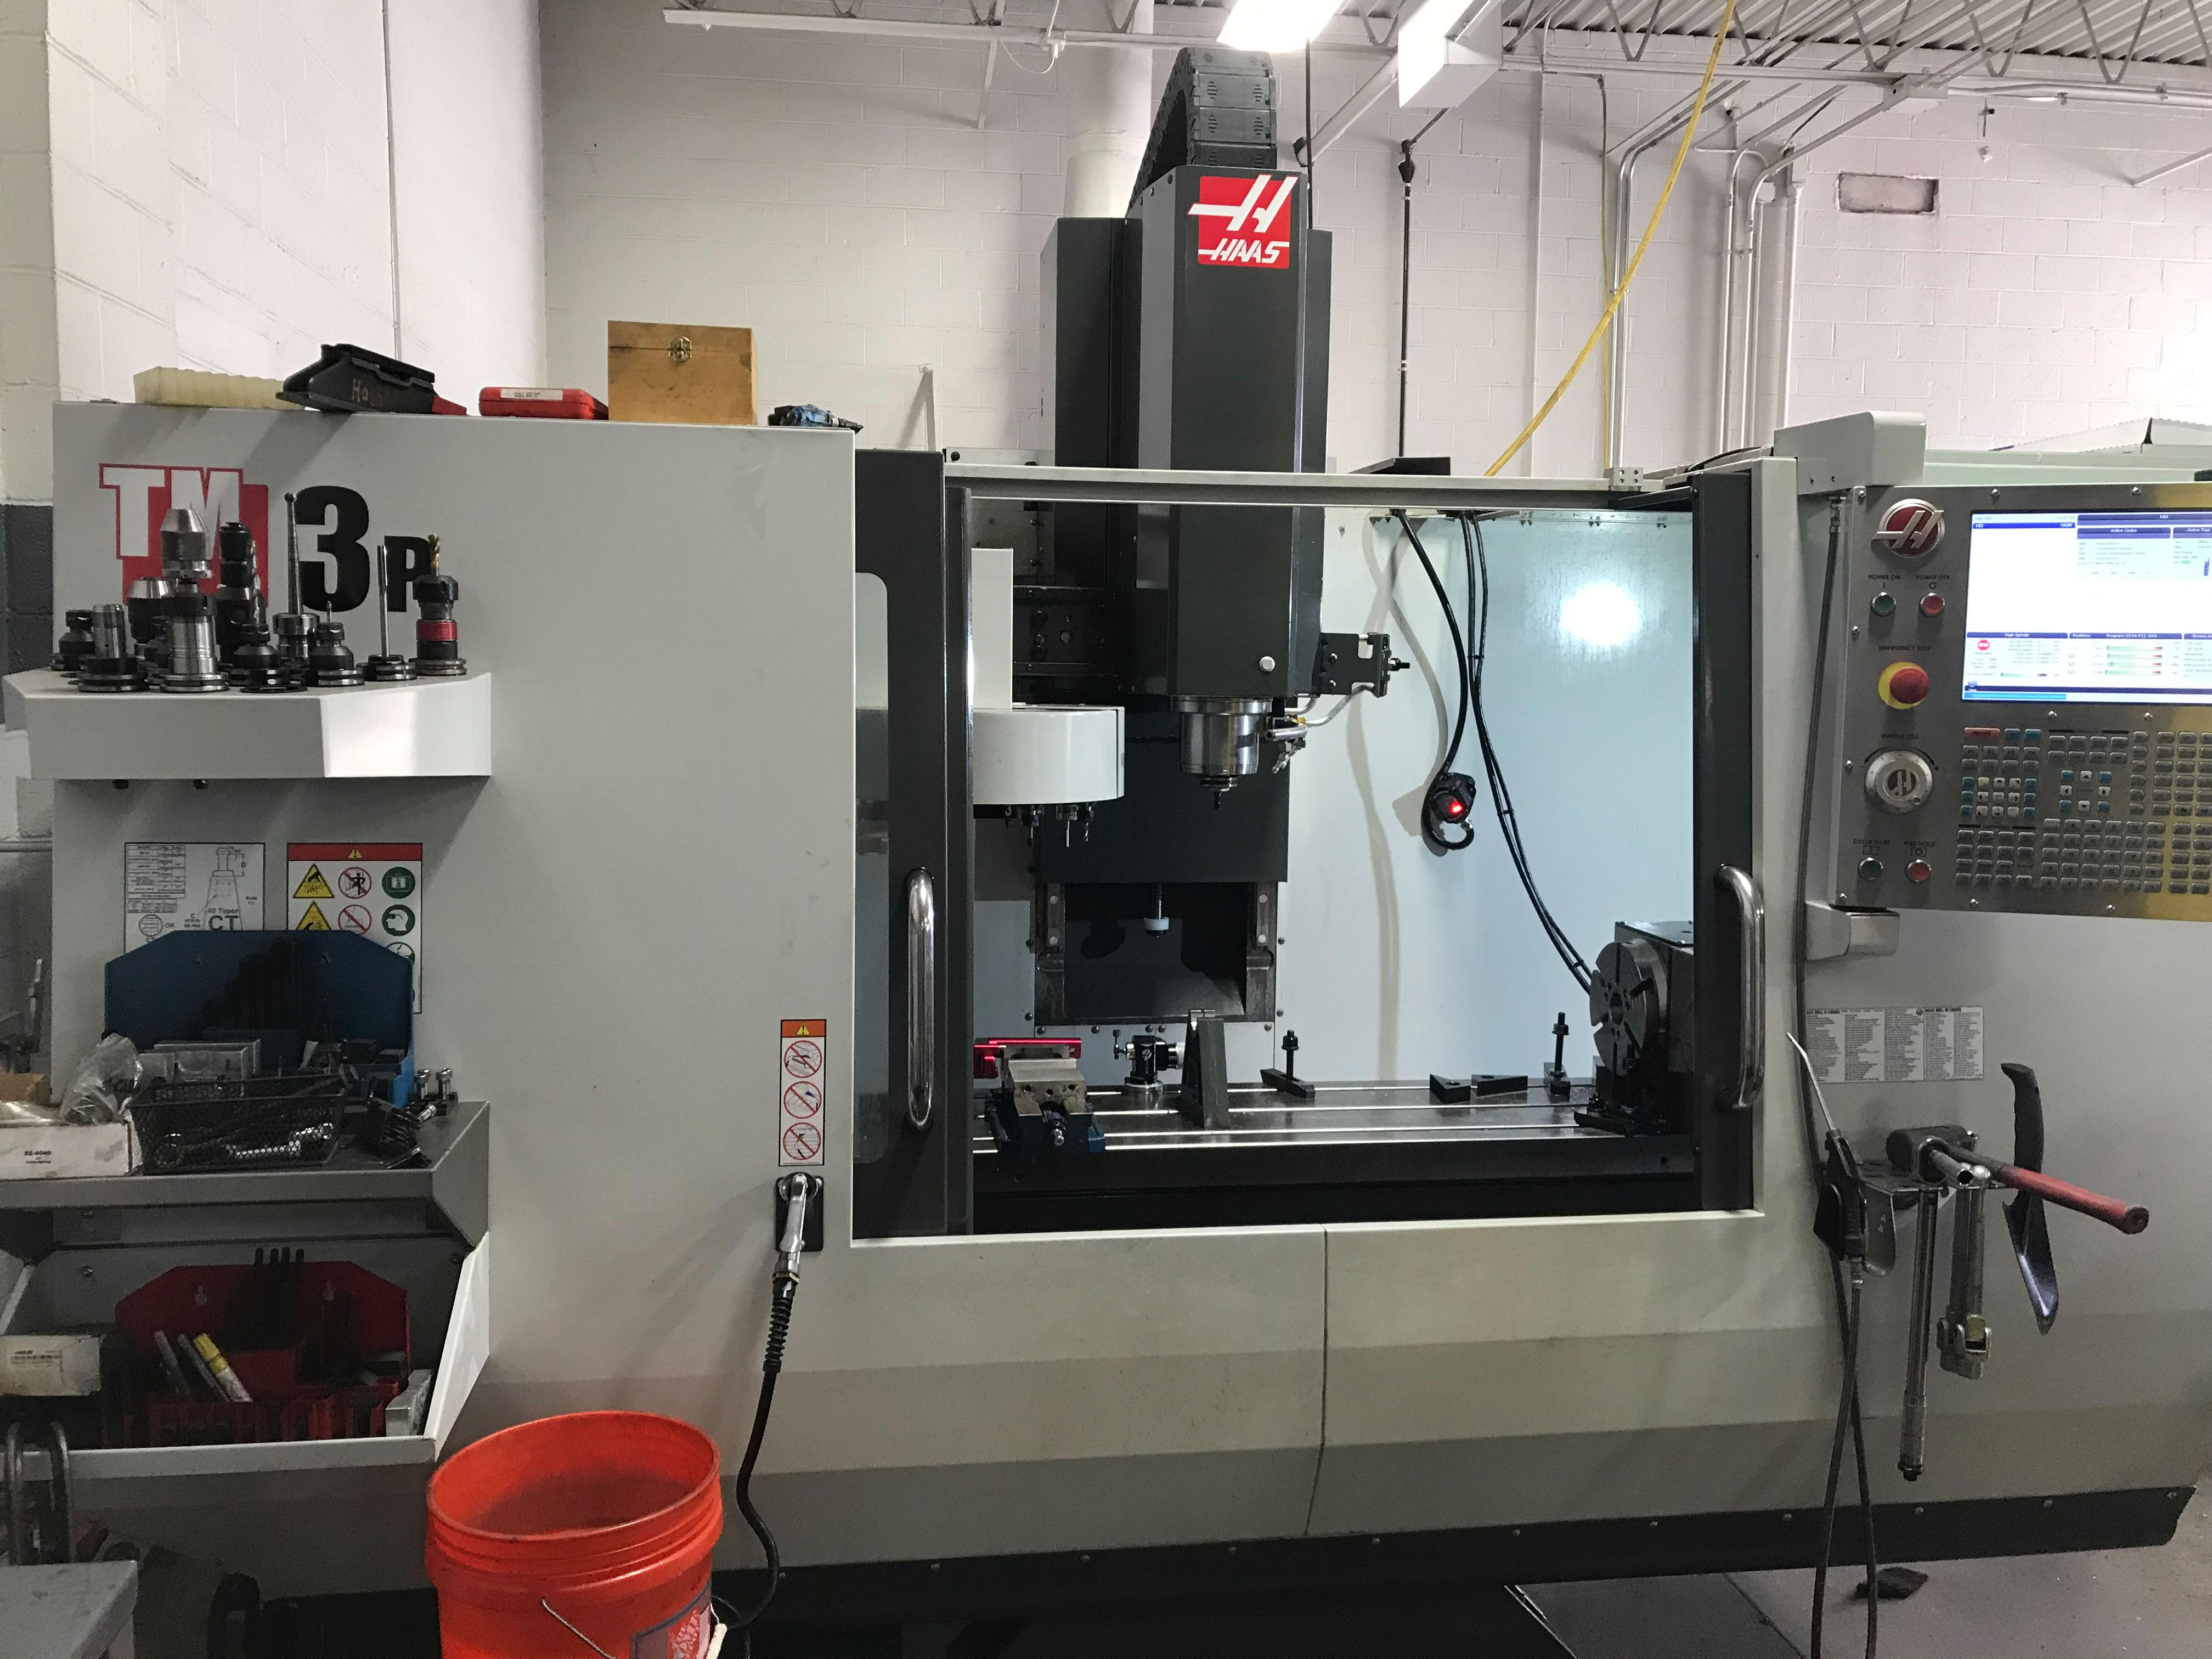 Haas TM3P CNC Vertical Machining Center, 40